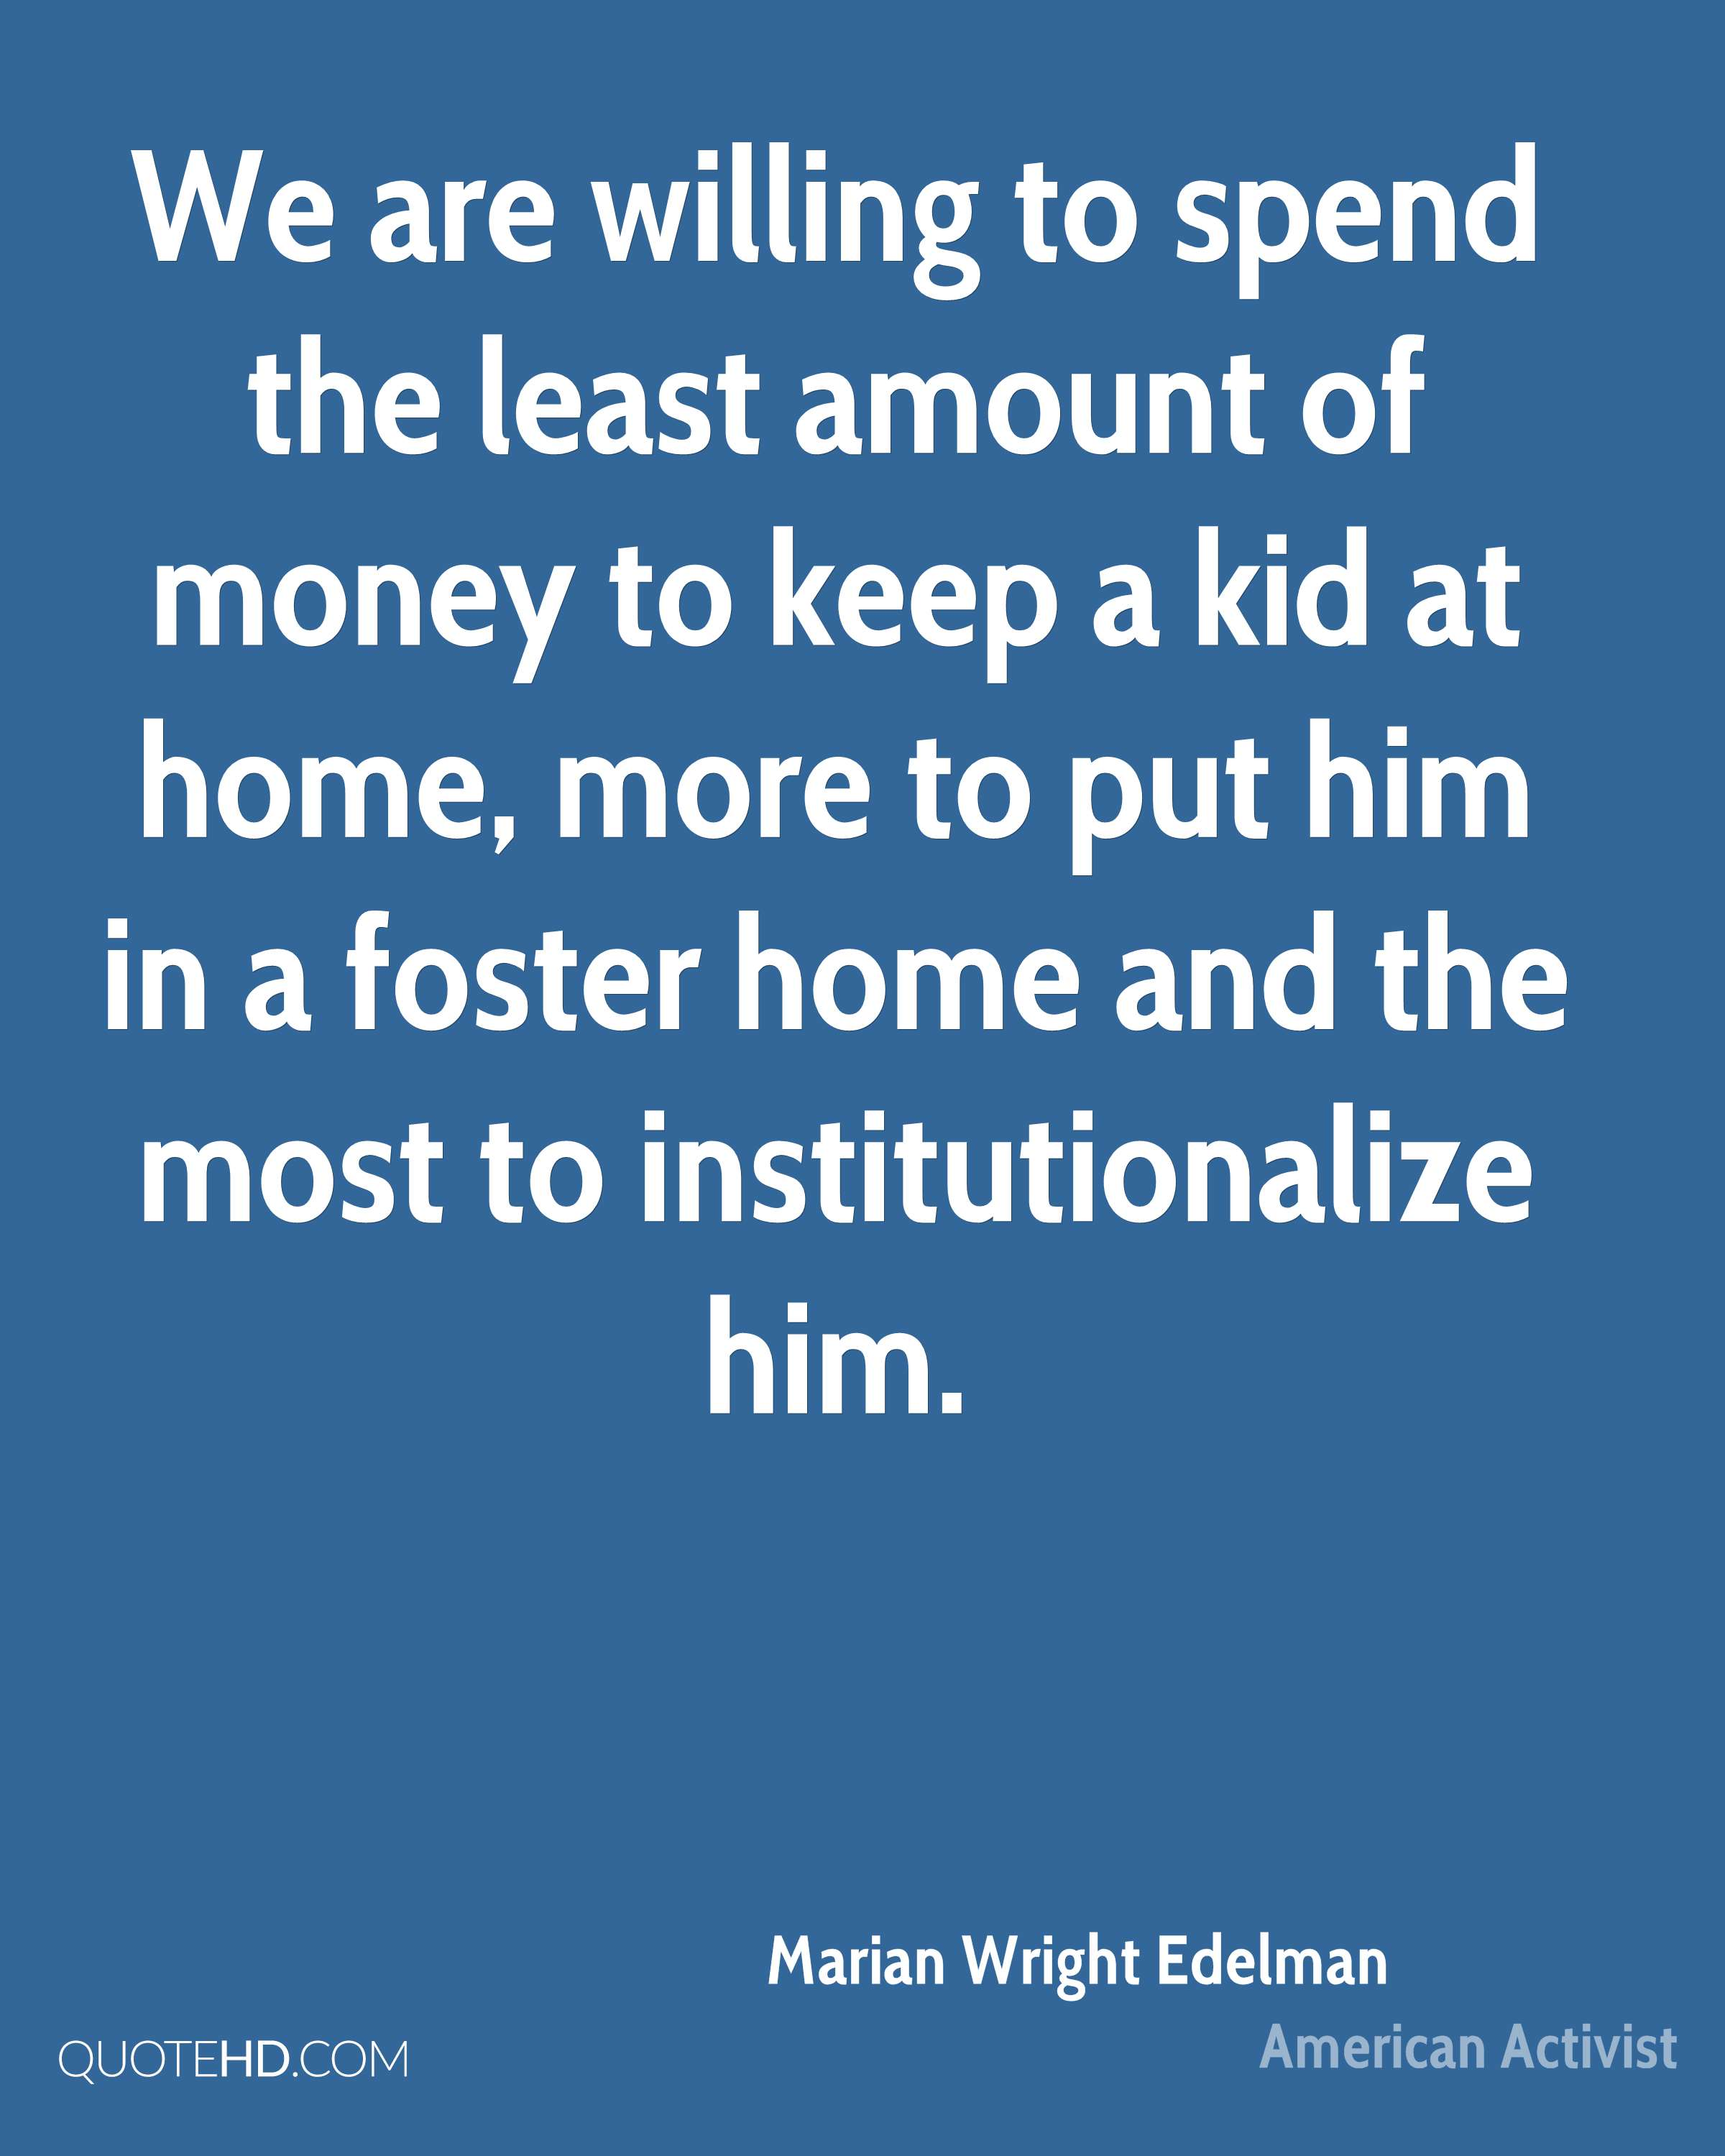 We are willing to spend the least amount of money to keep a kid at home, more to put him in a foster home and the most to institutionalize him.